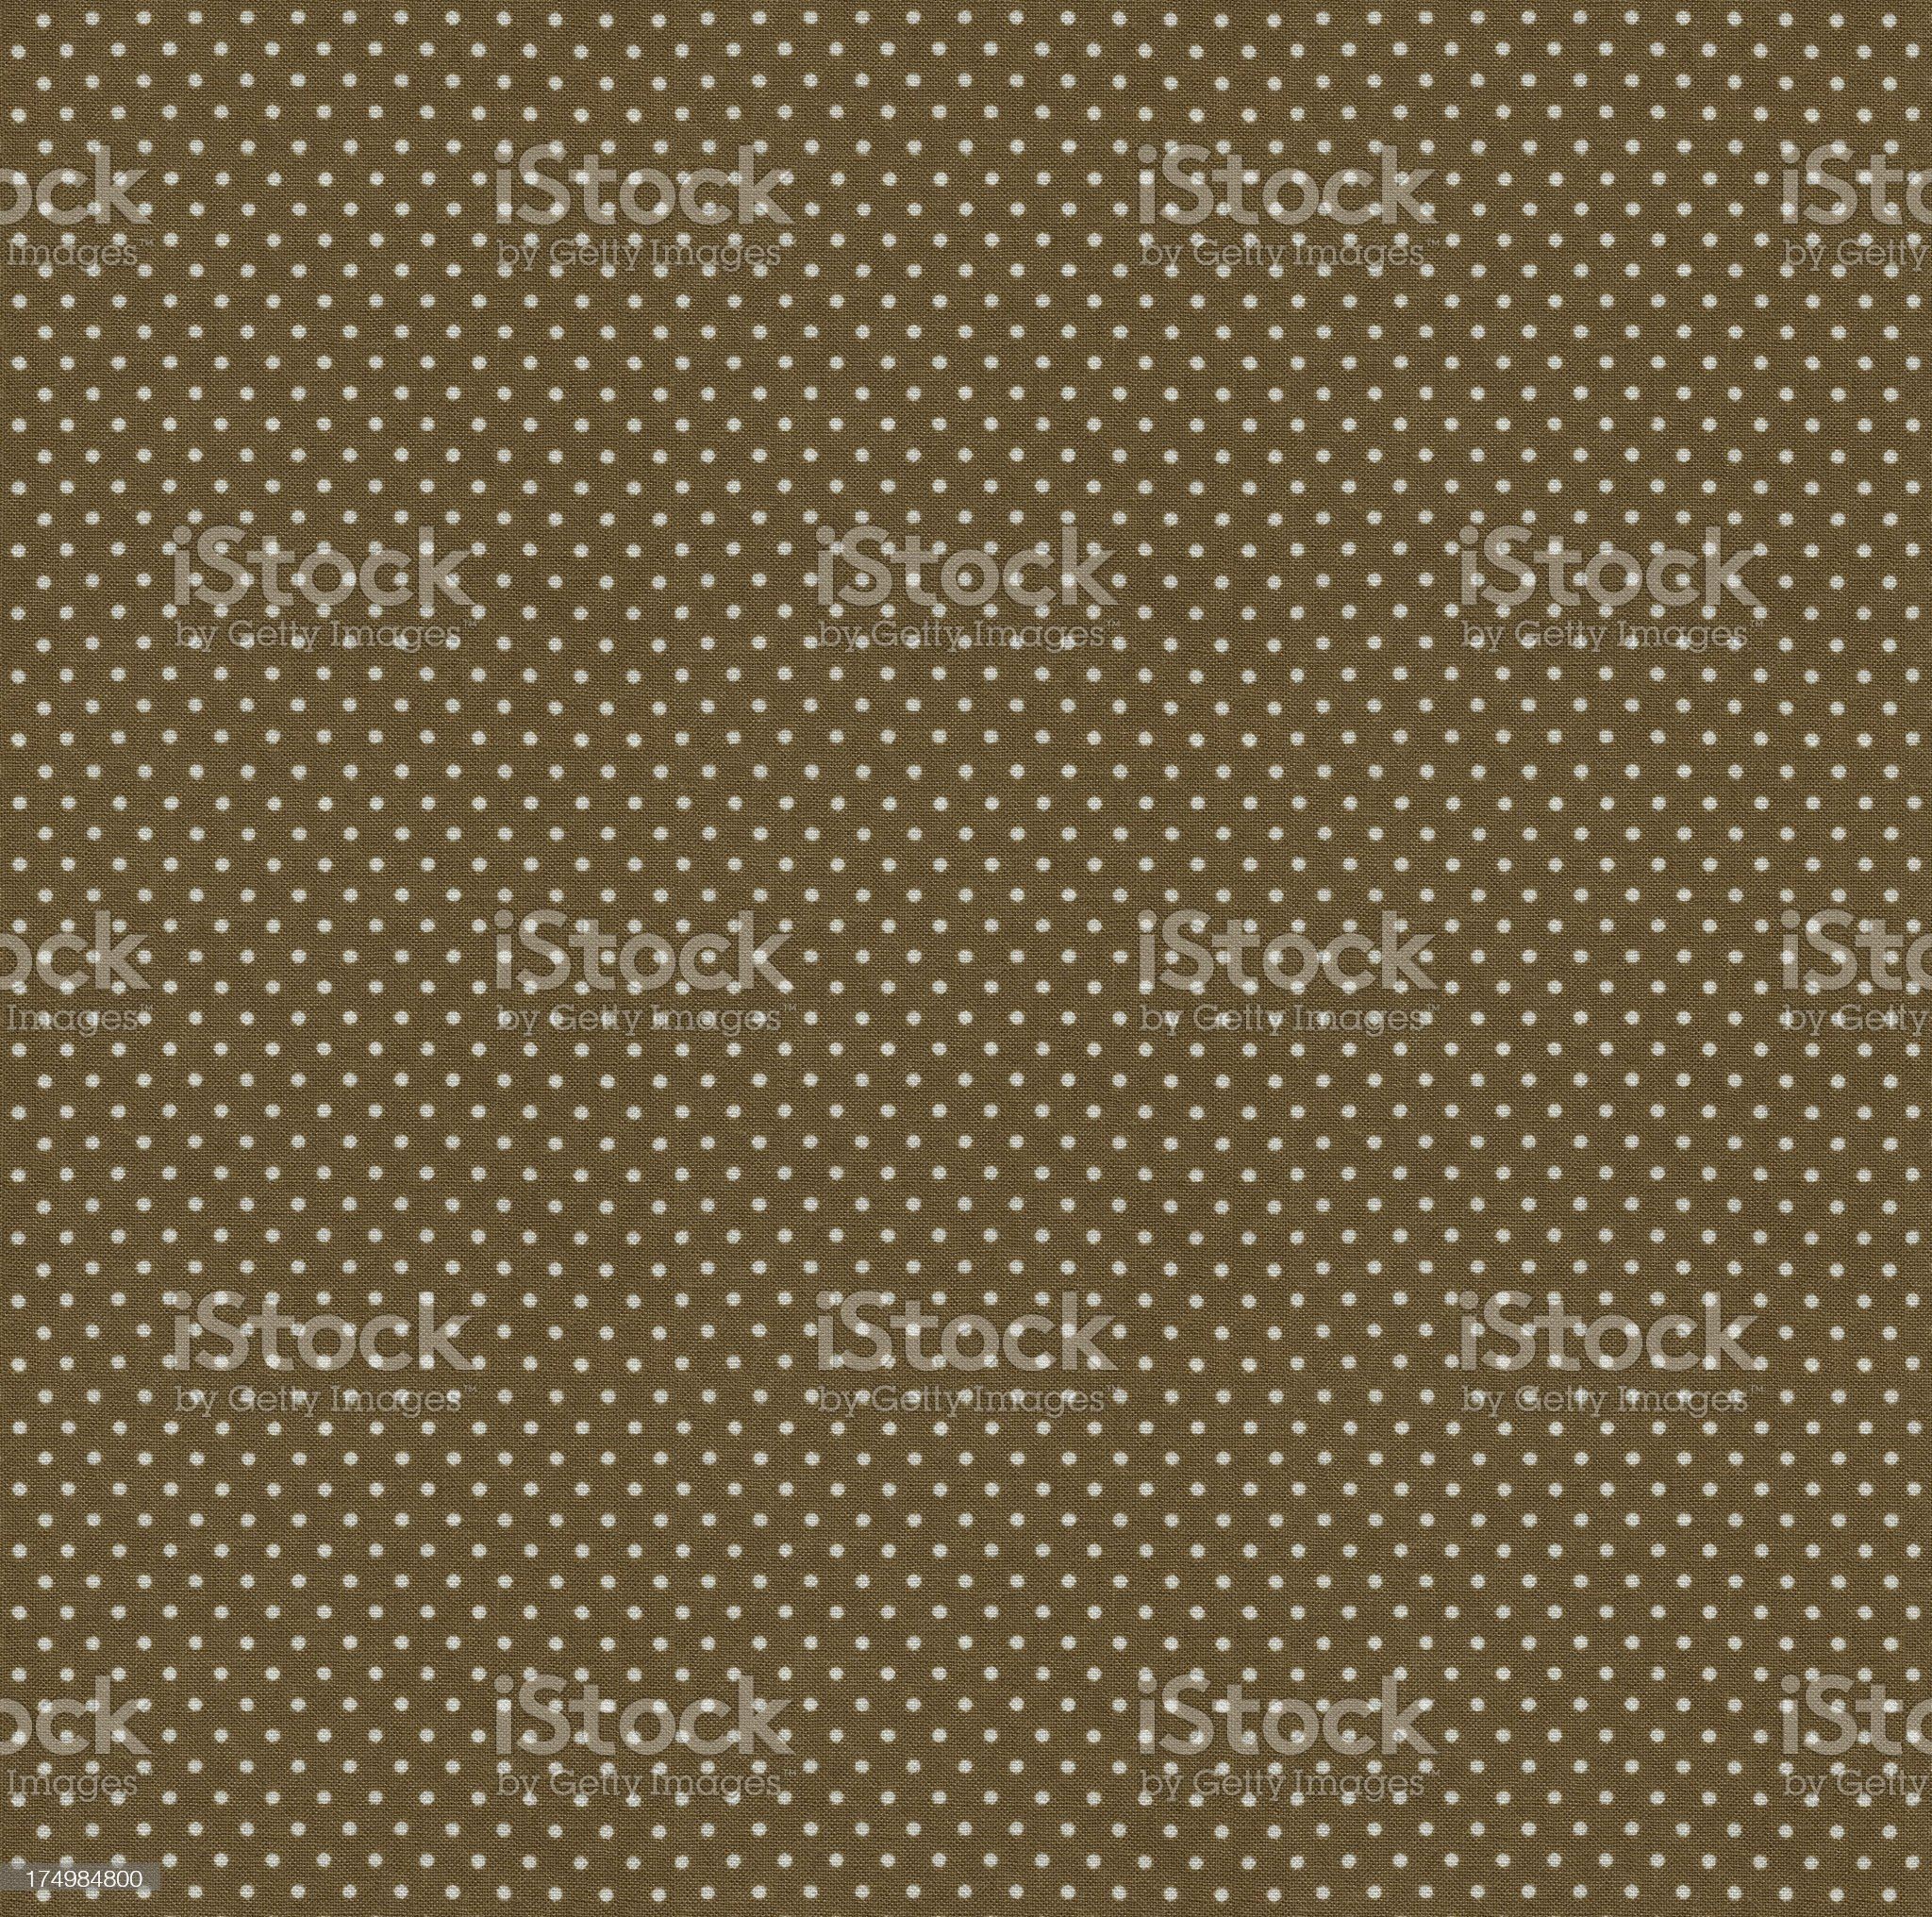 Brown and White Dots Texture royalty-free stock photo